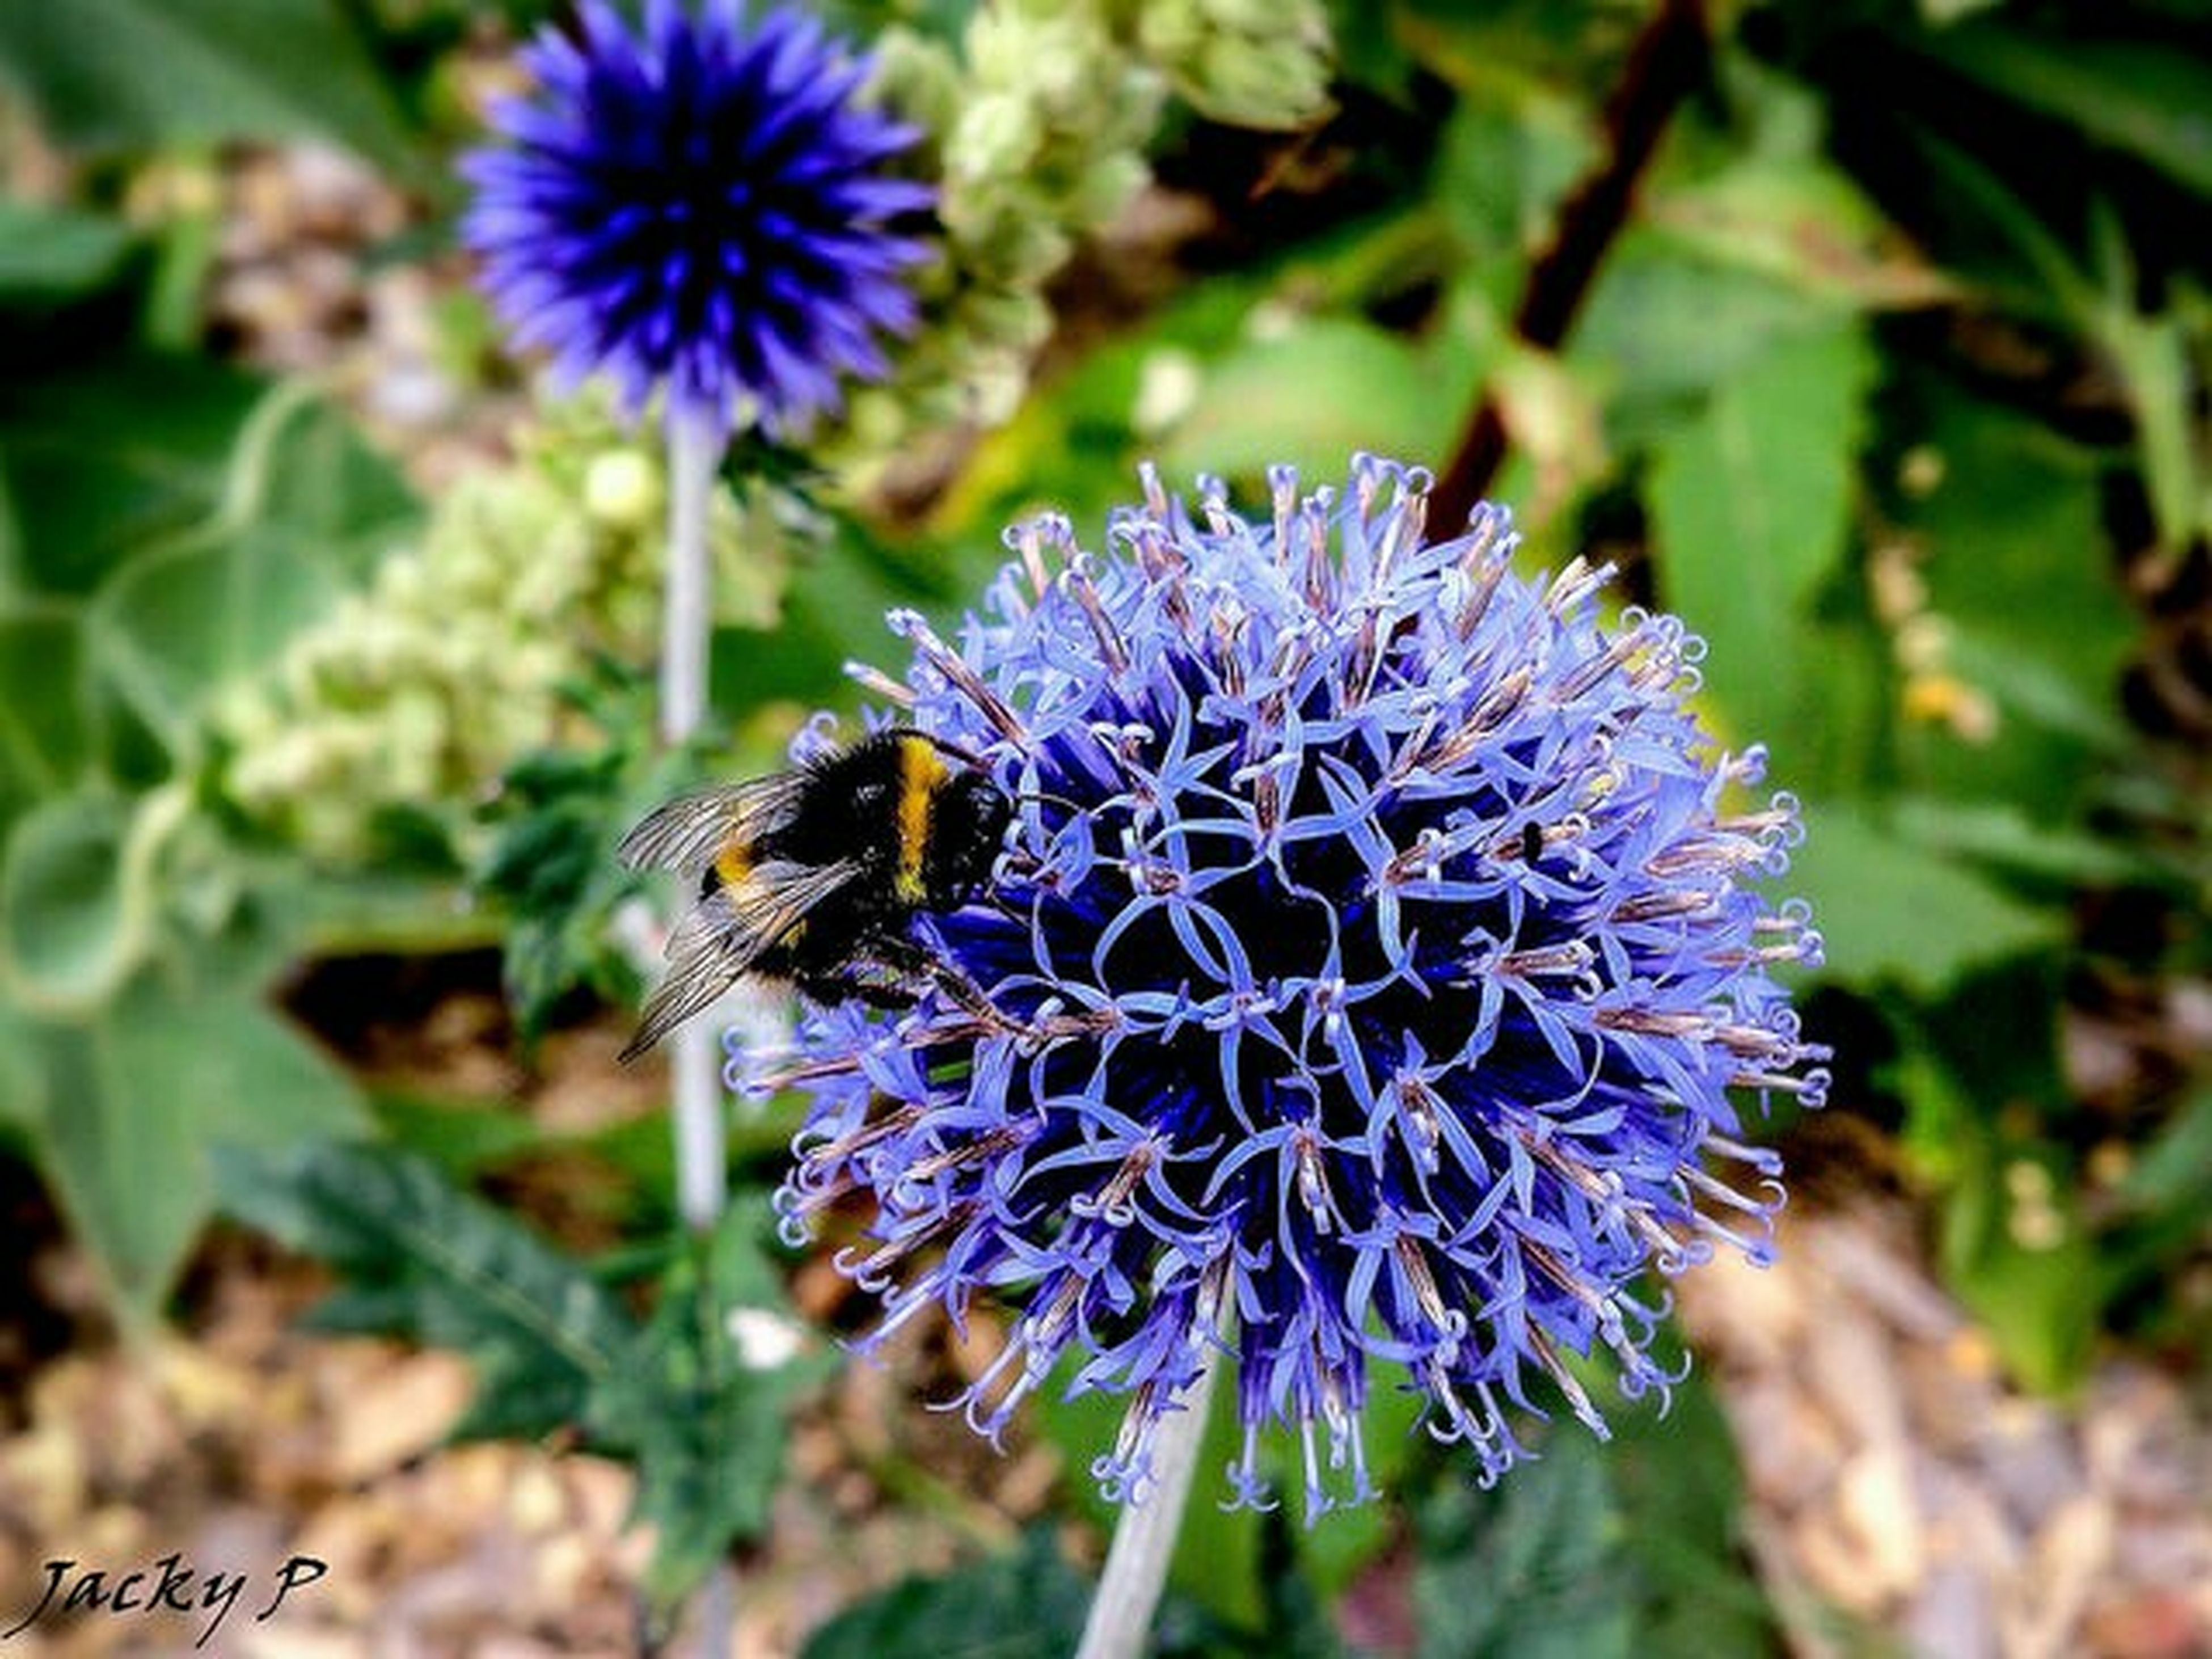 flower, purple, freshness, growth, fragility, flower head, focus on foreground, close-up, beauty in nature, petal, plant, nature, blooming, thistle, insect, animals in the wild, animal themes, in bloom, one animal, day